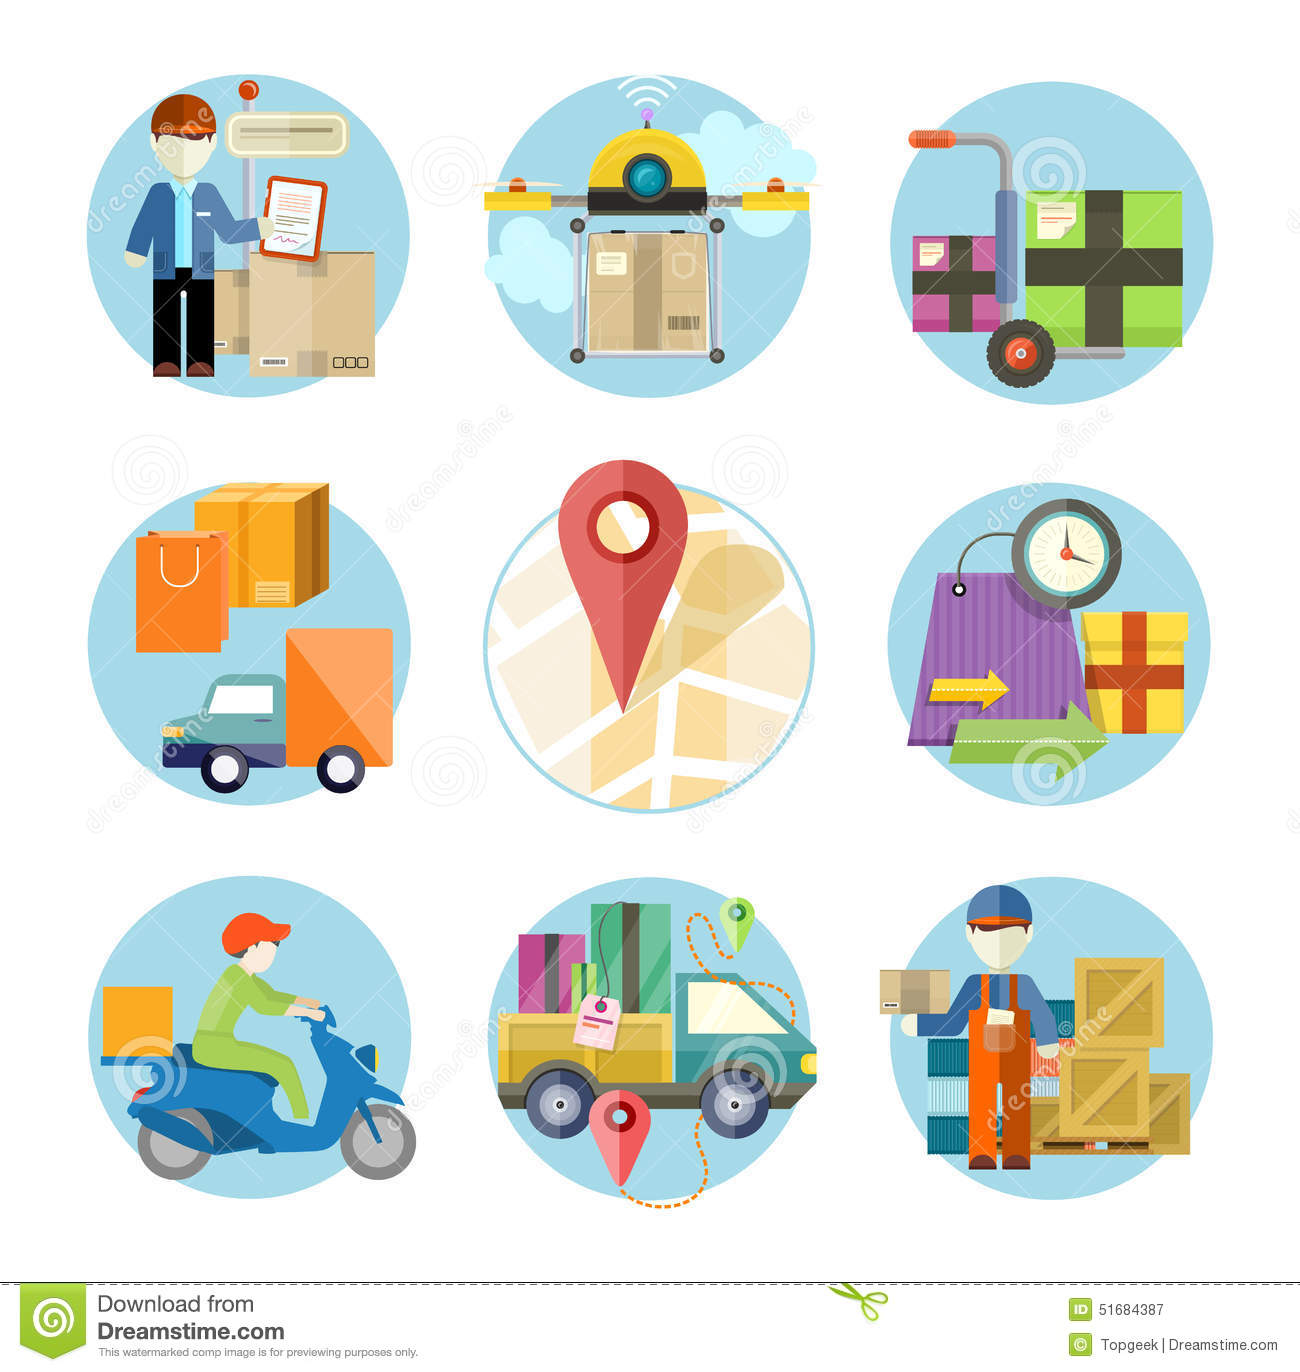 Goods and services clipart 1 » Clipart Station.